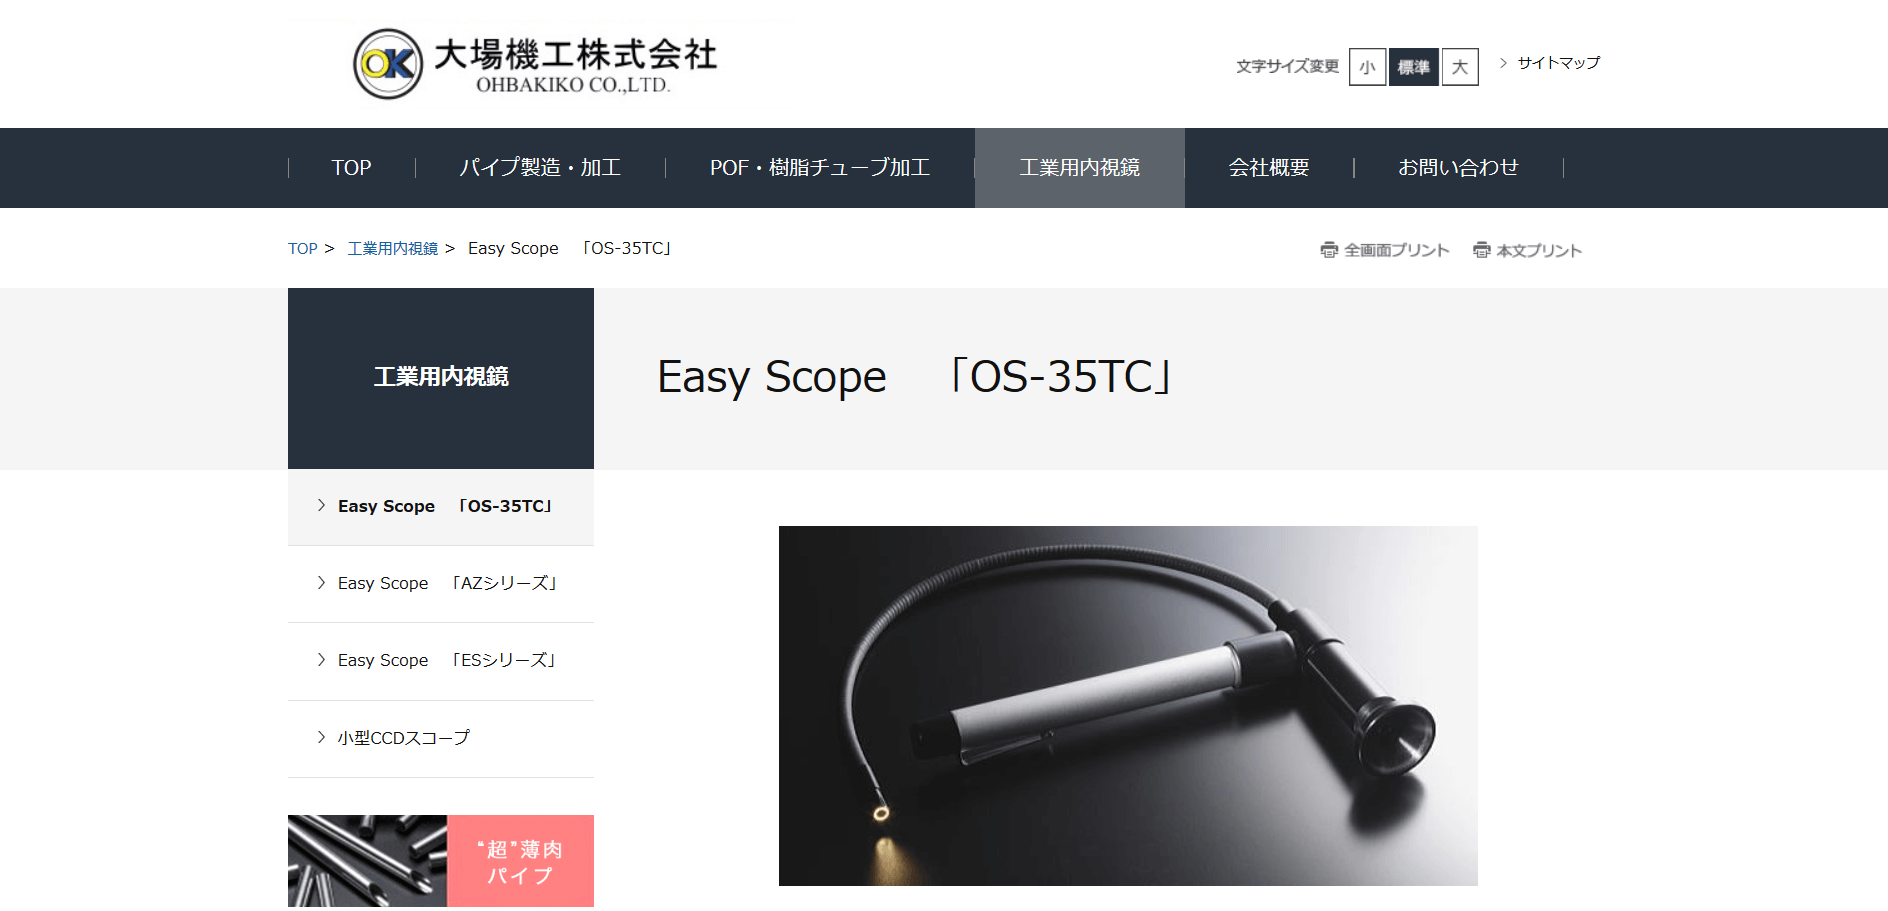 Easy Scope 「OS-35TC」